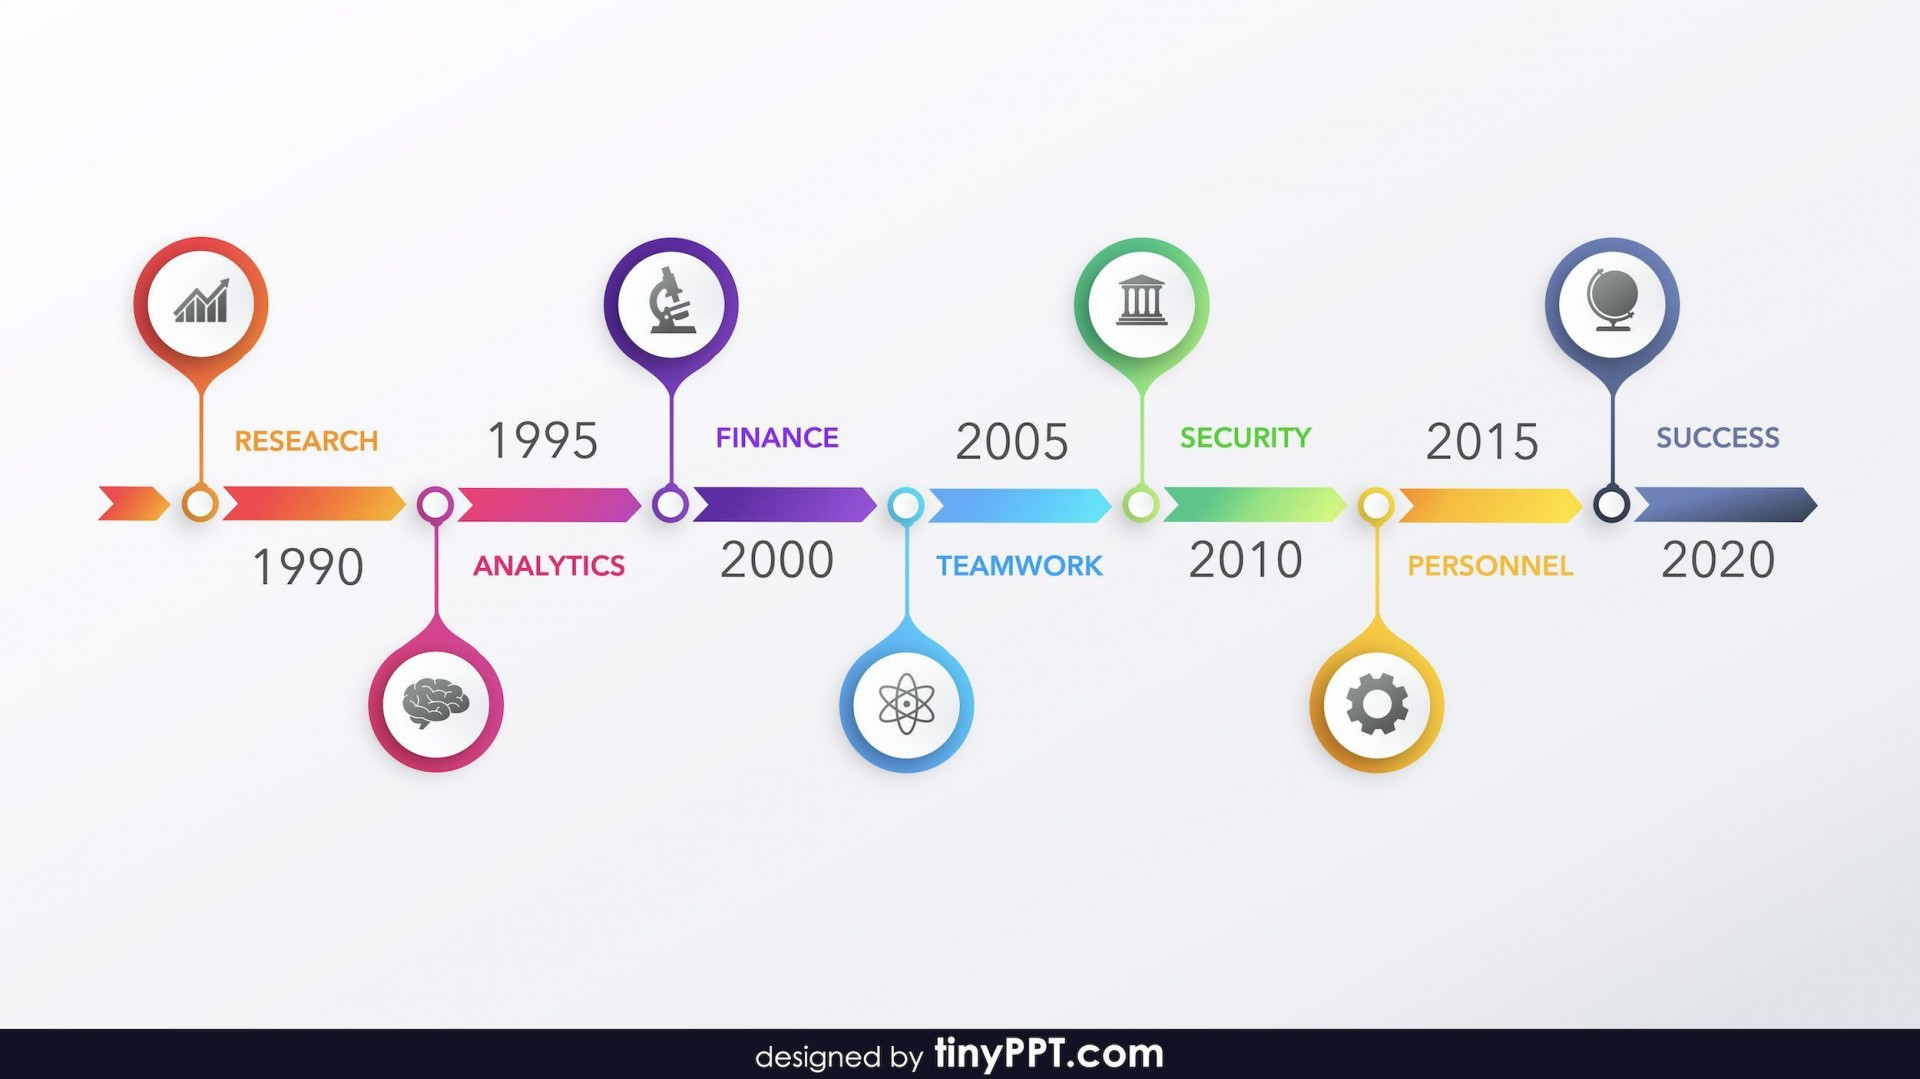 003 Shocking Timeline Template For Ppt Free Highest Quality  Infographic Vertical Download1920